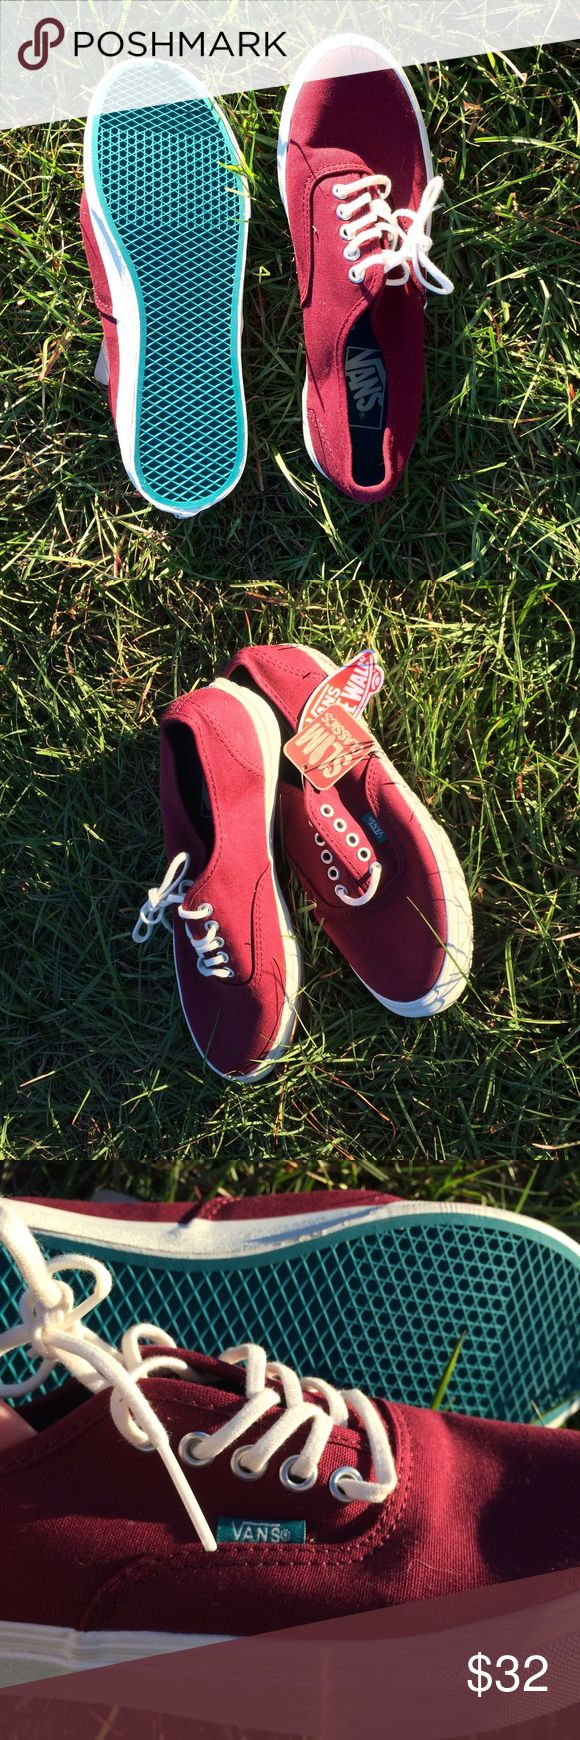 Brand New Maroon Vans  These absolutely gorgeous women's size 8 Vans shoes are brand new with tags! I paid about $50 for them, I think, because they're my favorite colors, but they're sadly too big for me. They've never been worn, so they'd even make a great gift! I don't have the original box, but the tags are still in perfect condition. Come love 'em and break these bad boys in.   Vans Shoes Sneakers